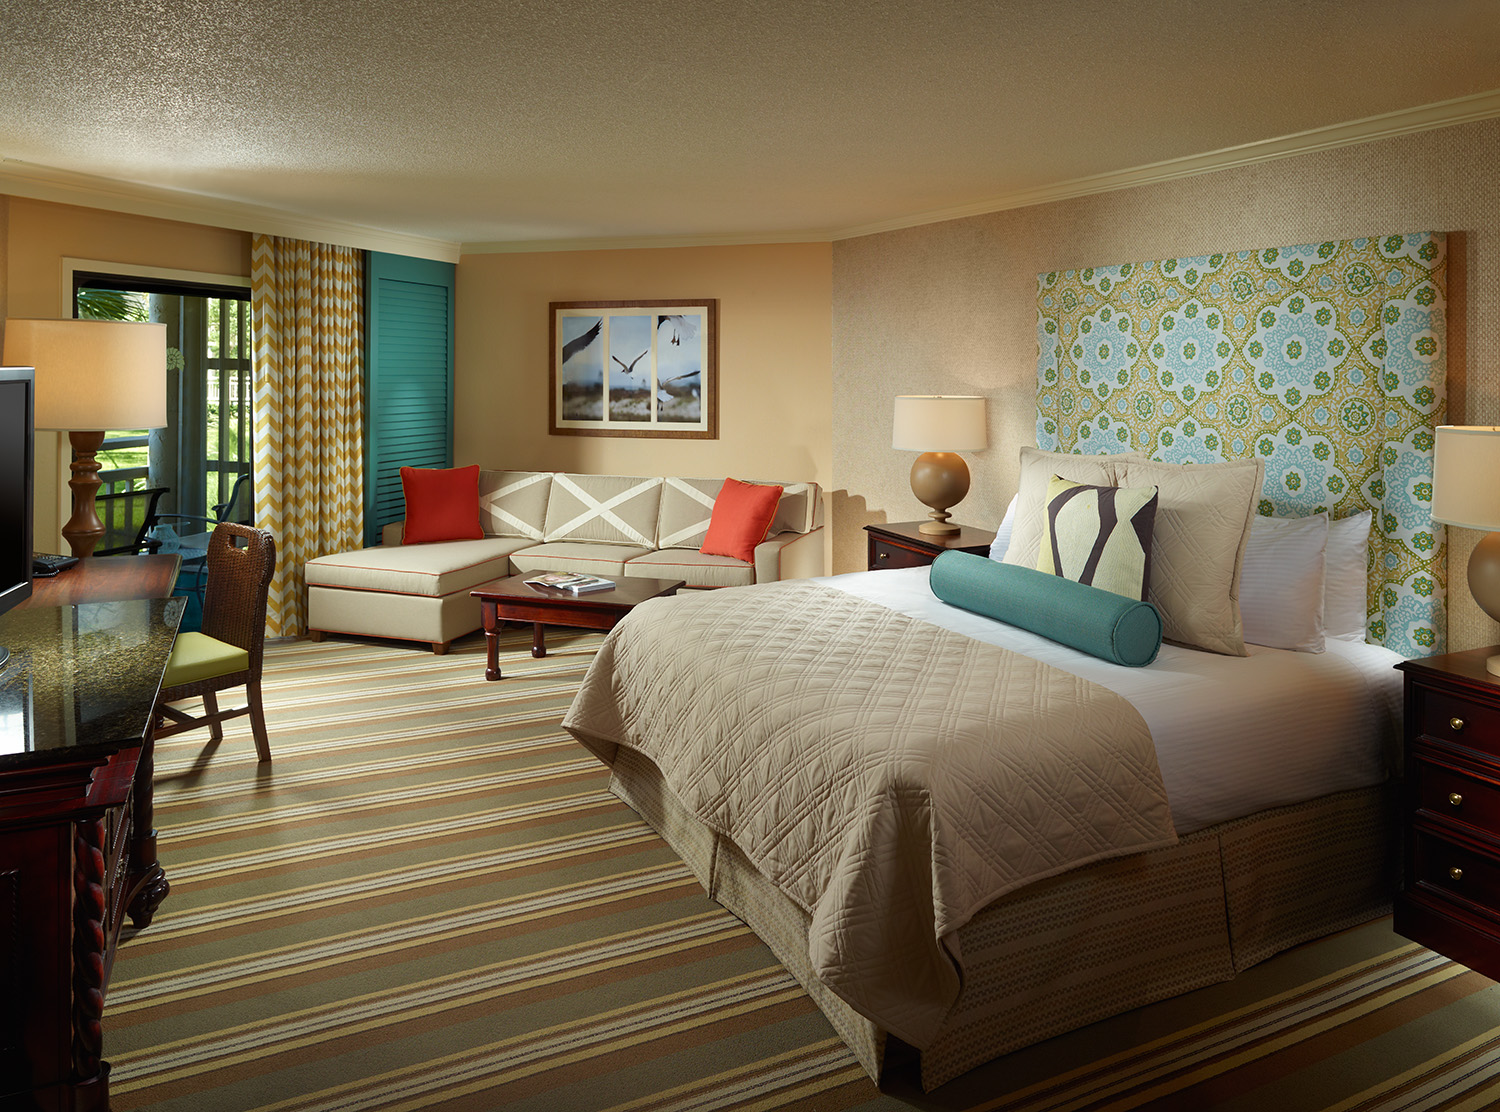 Hilton Head Island The Omni Hilton Head Oceanfront Resort Reveals New Rooms Spa And Pool